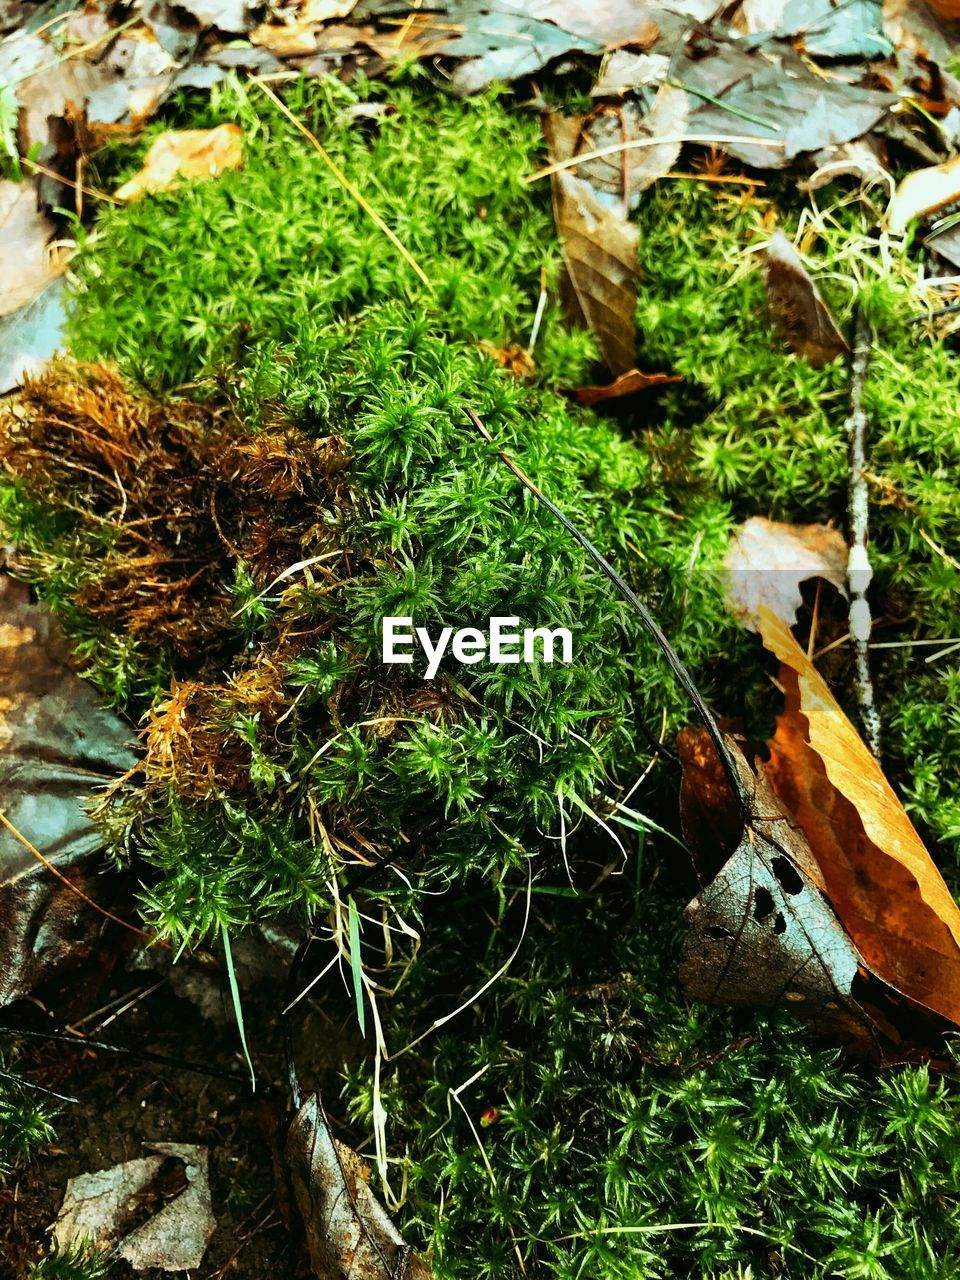 plant, leaf, growth, plant part, nature, green color, no people, day, land, field, high angle view, moss, close-up, grass, beauty in nature, outdoors, forest, dry, tranquility, tree, leaves